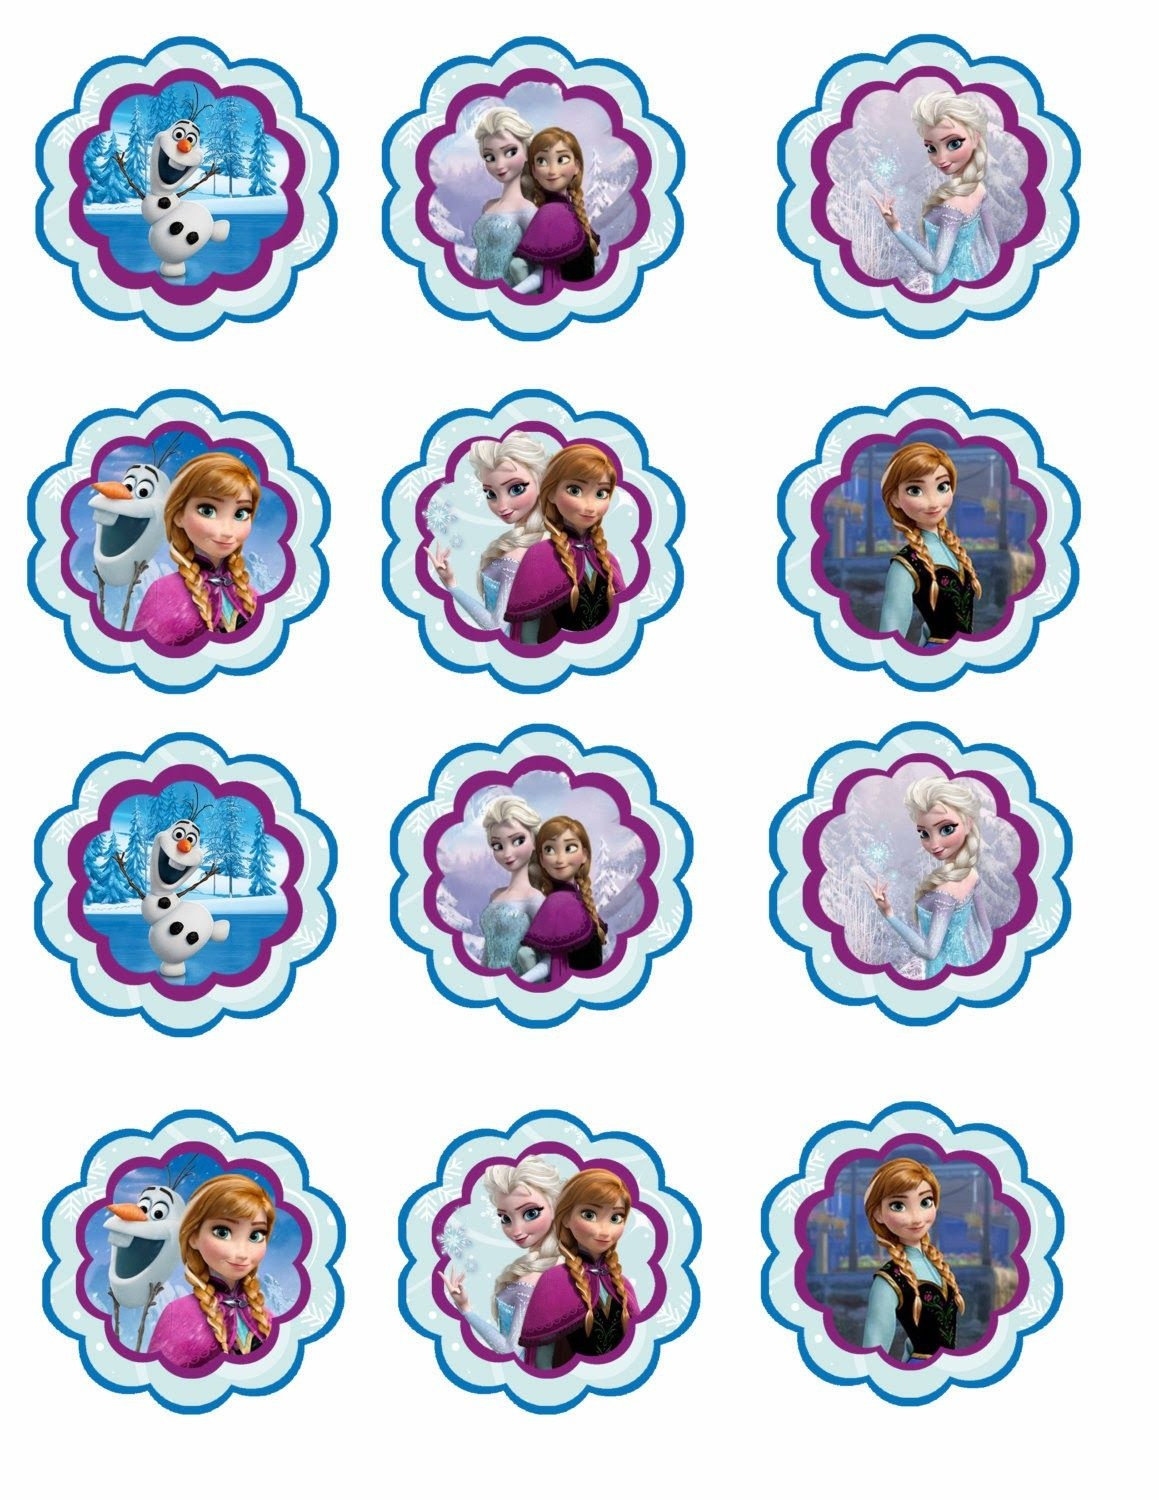 Frozen: Free Printable Toppers. | Recipes To Cook | Frozen Cupcakes - Frozen Cupcake Toppers Free Printable